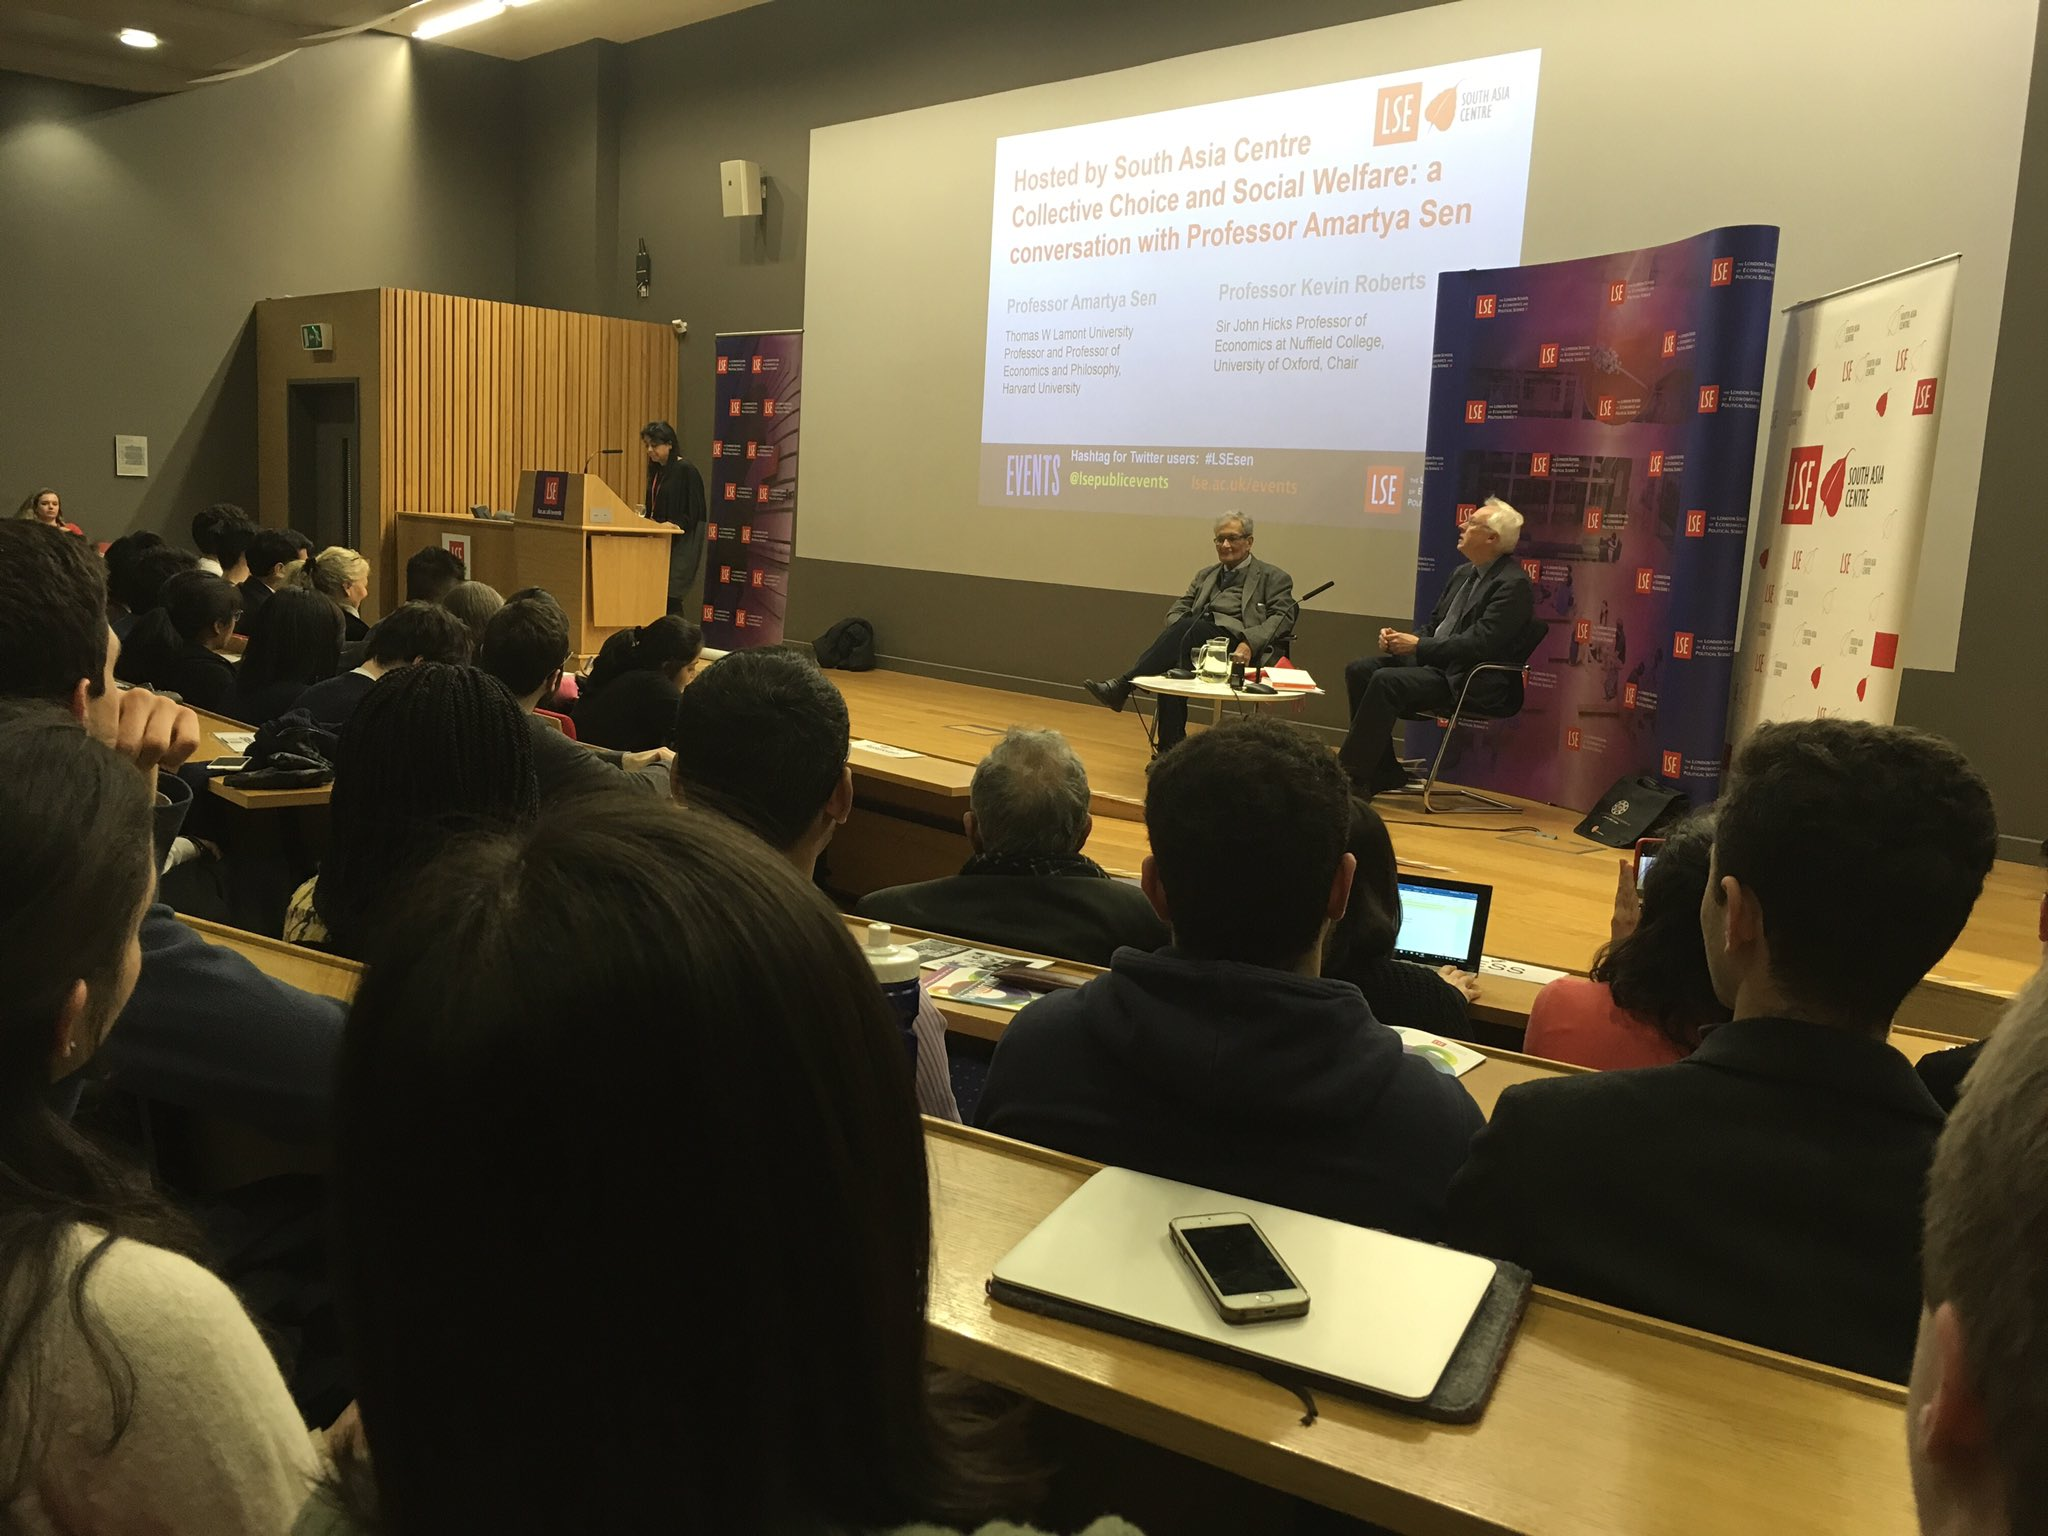 Professor Amartya Sen being introduced at #LSE's public lecture on collective choice and social welfare this evening #LSESen https://t.co/BM29JxsC7J